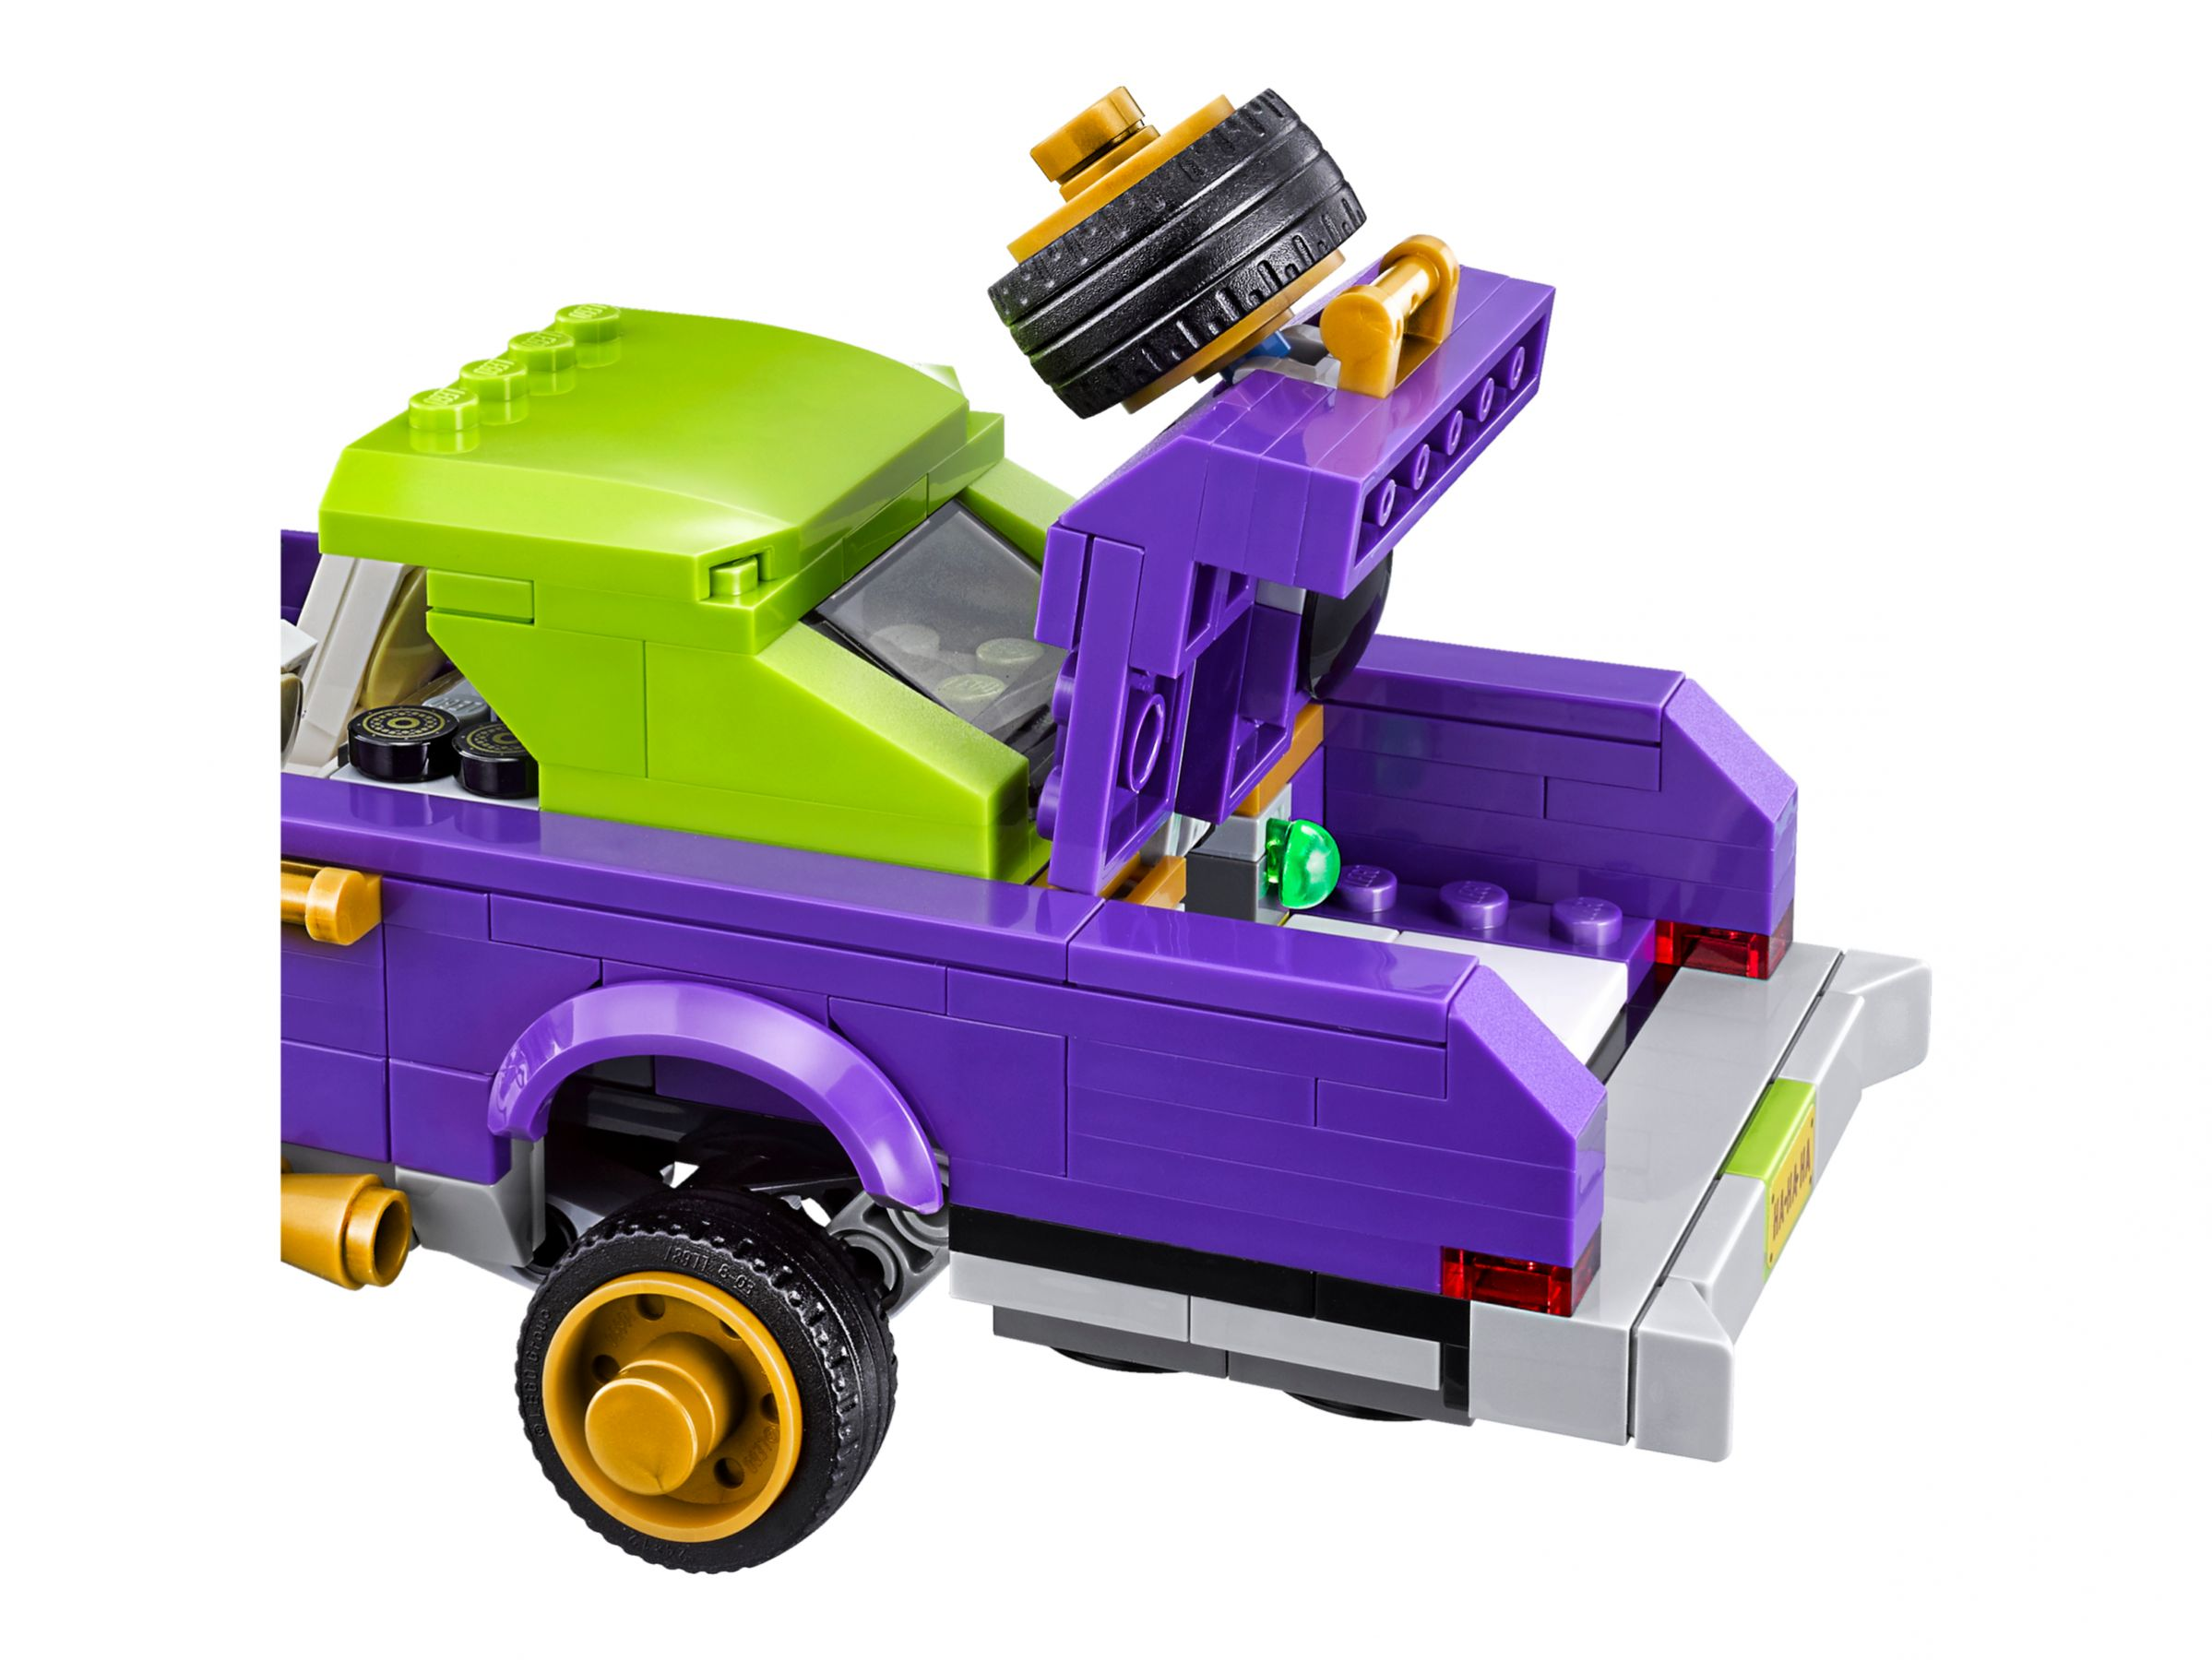 LEGO The LEGO Batman Movie 70906 Jokers berüchtigter Lowrider LEGO_70906_alt5.jpg